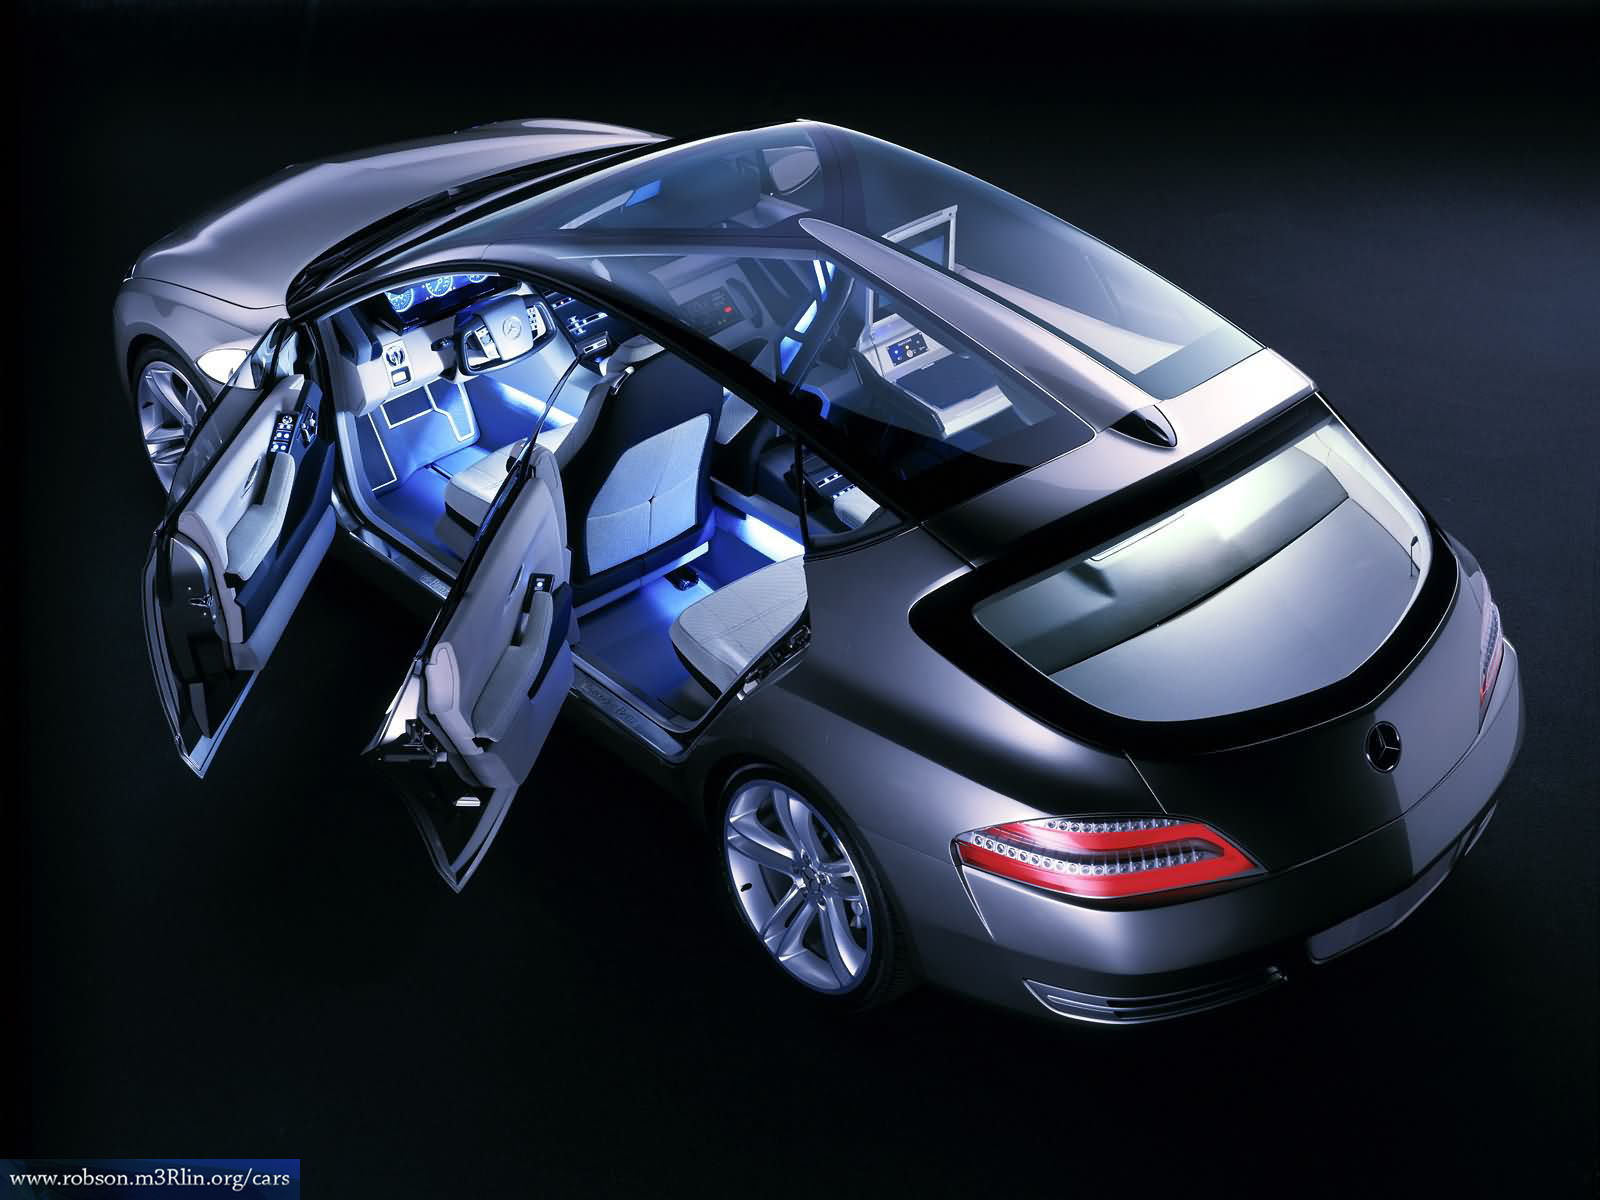 Mercedes-Benz F500 Concept Car  7